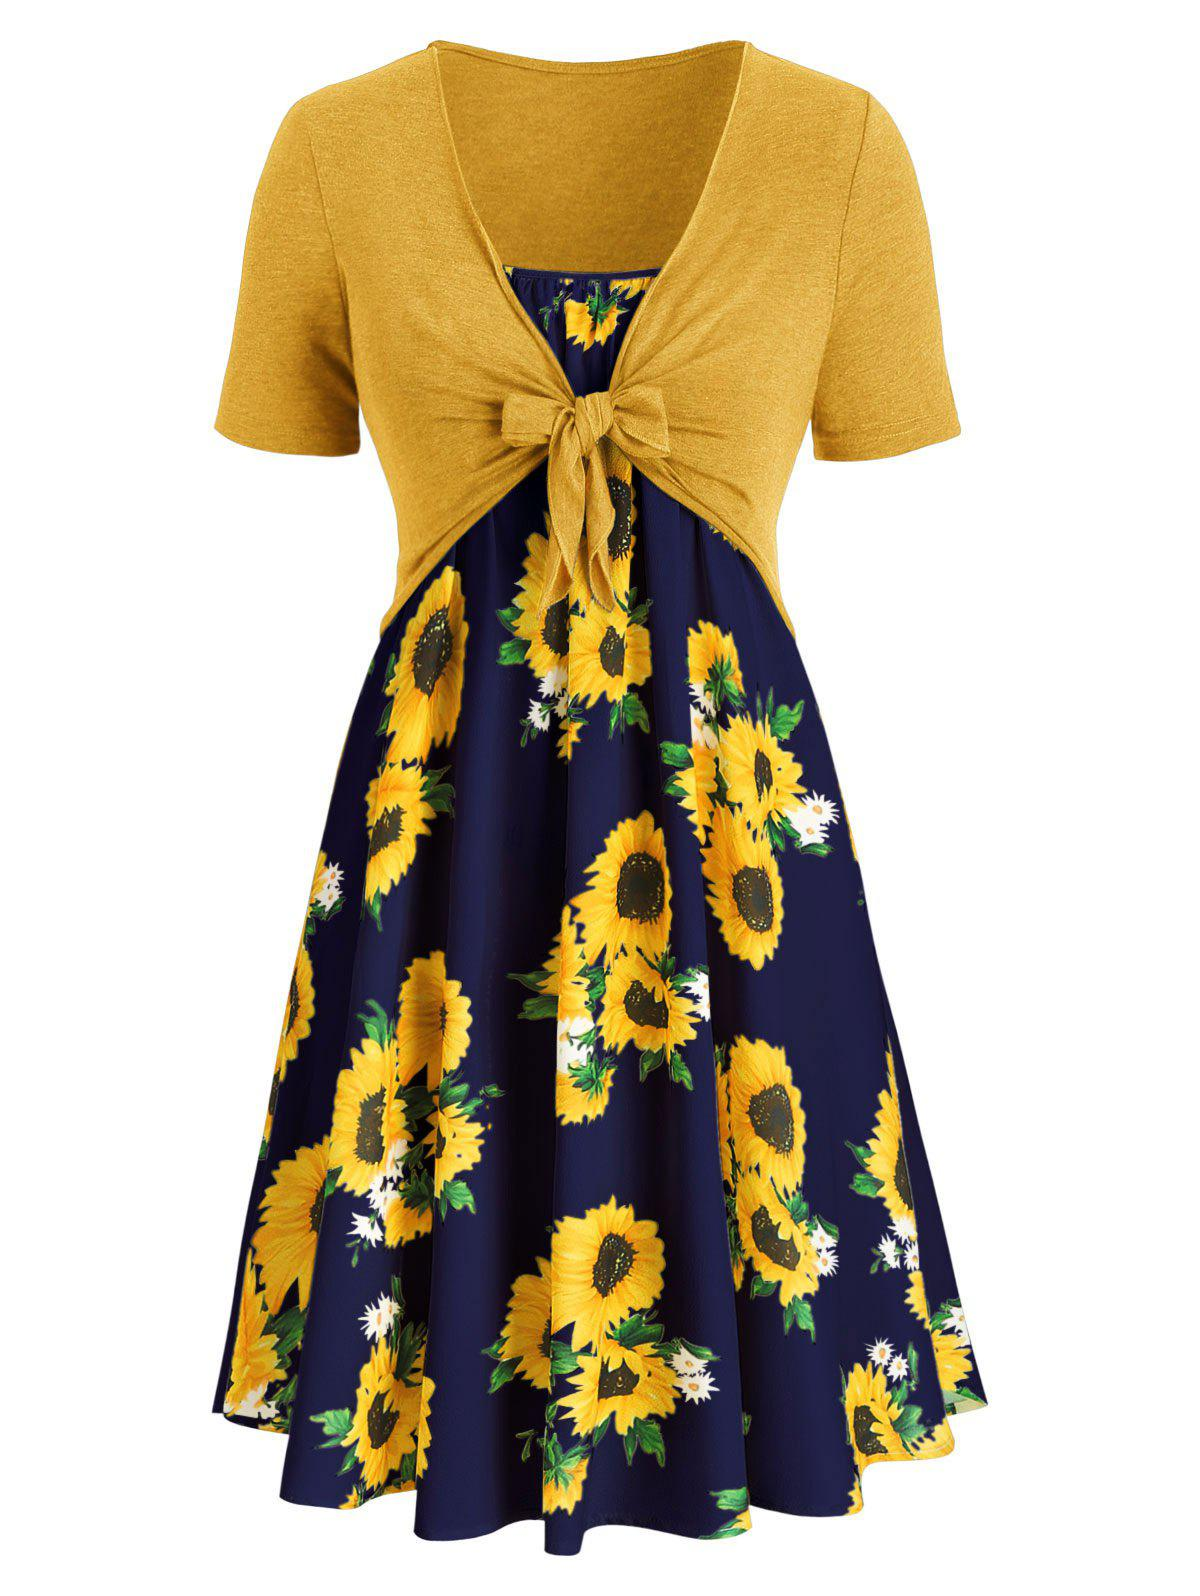 Plus Size Sunflower Print Dress With Front Knot Top - multicolor G L